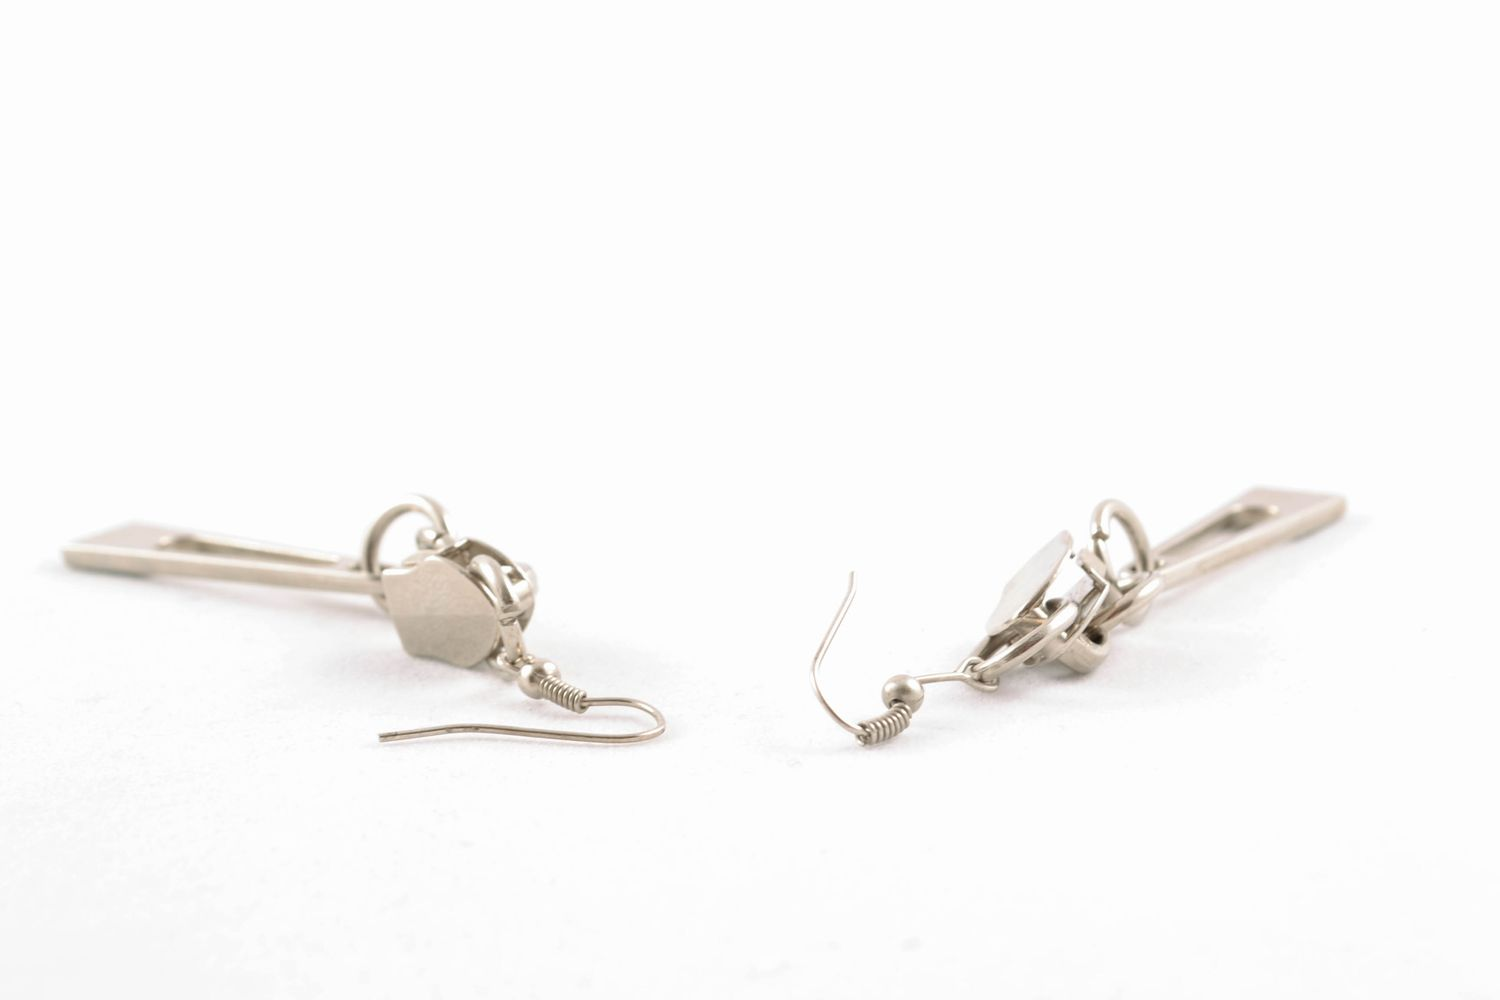 Earrings with metal charms photo 4